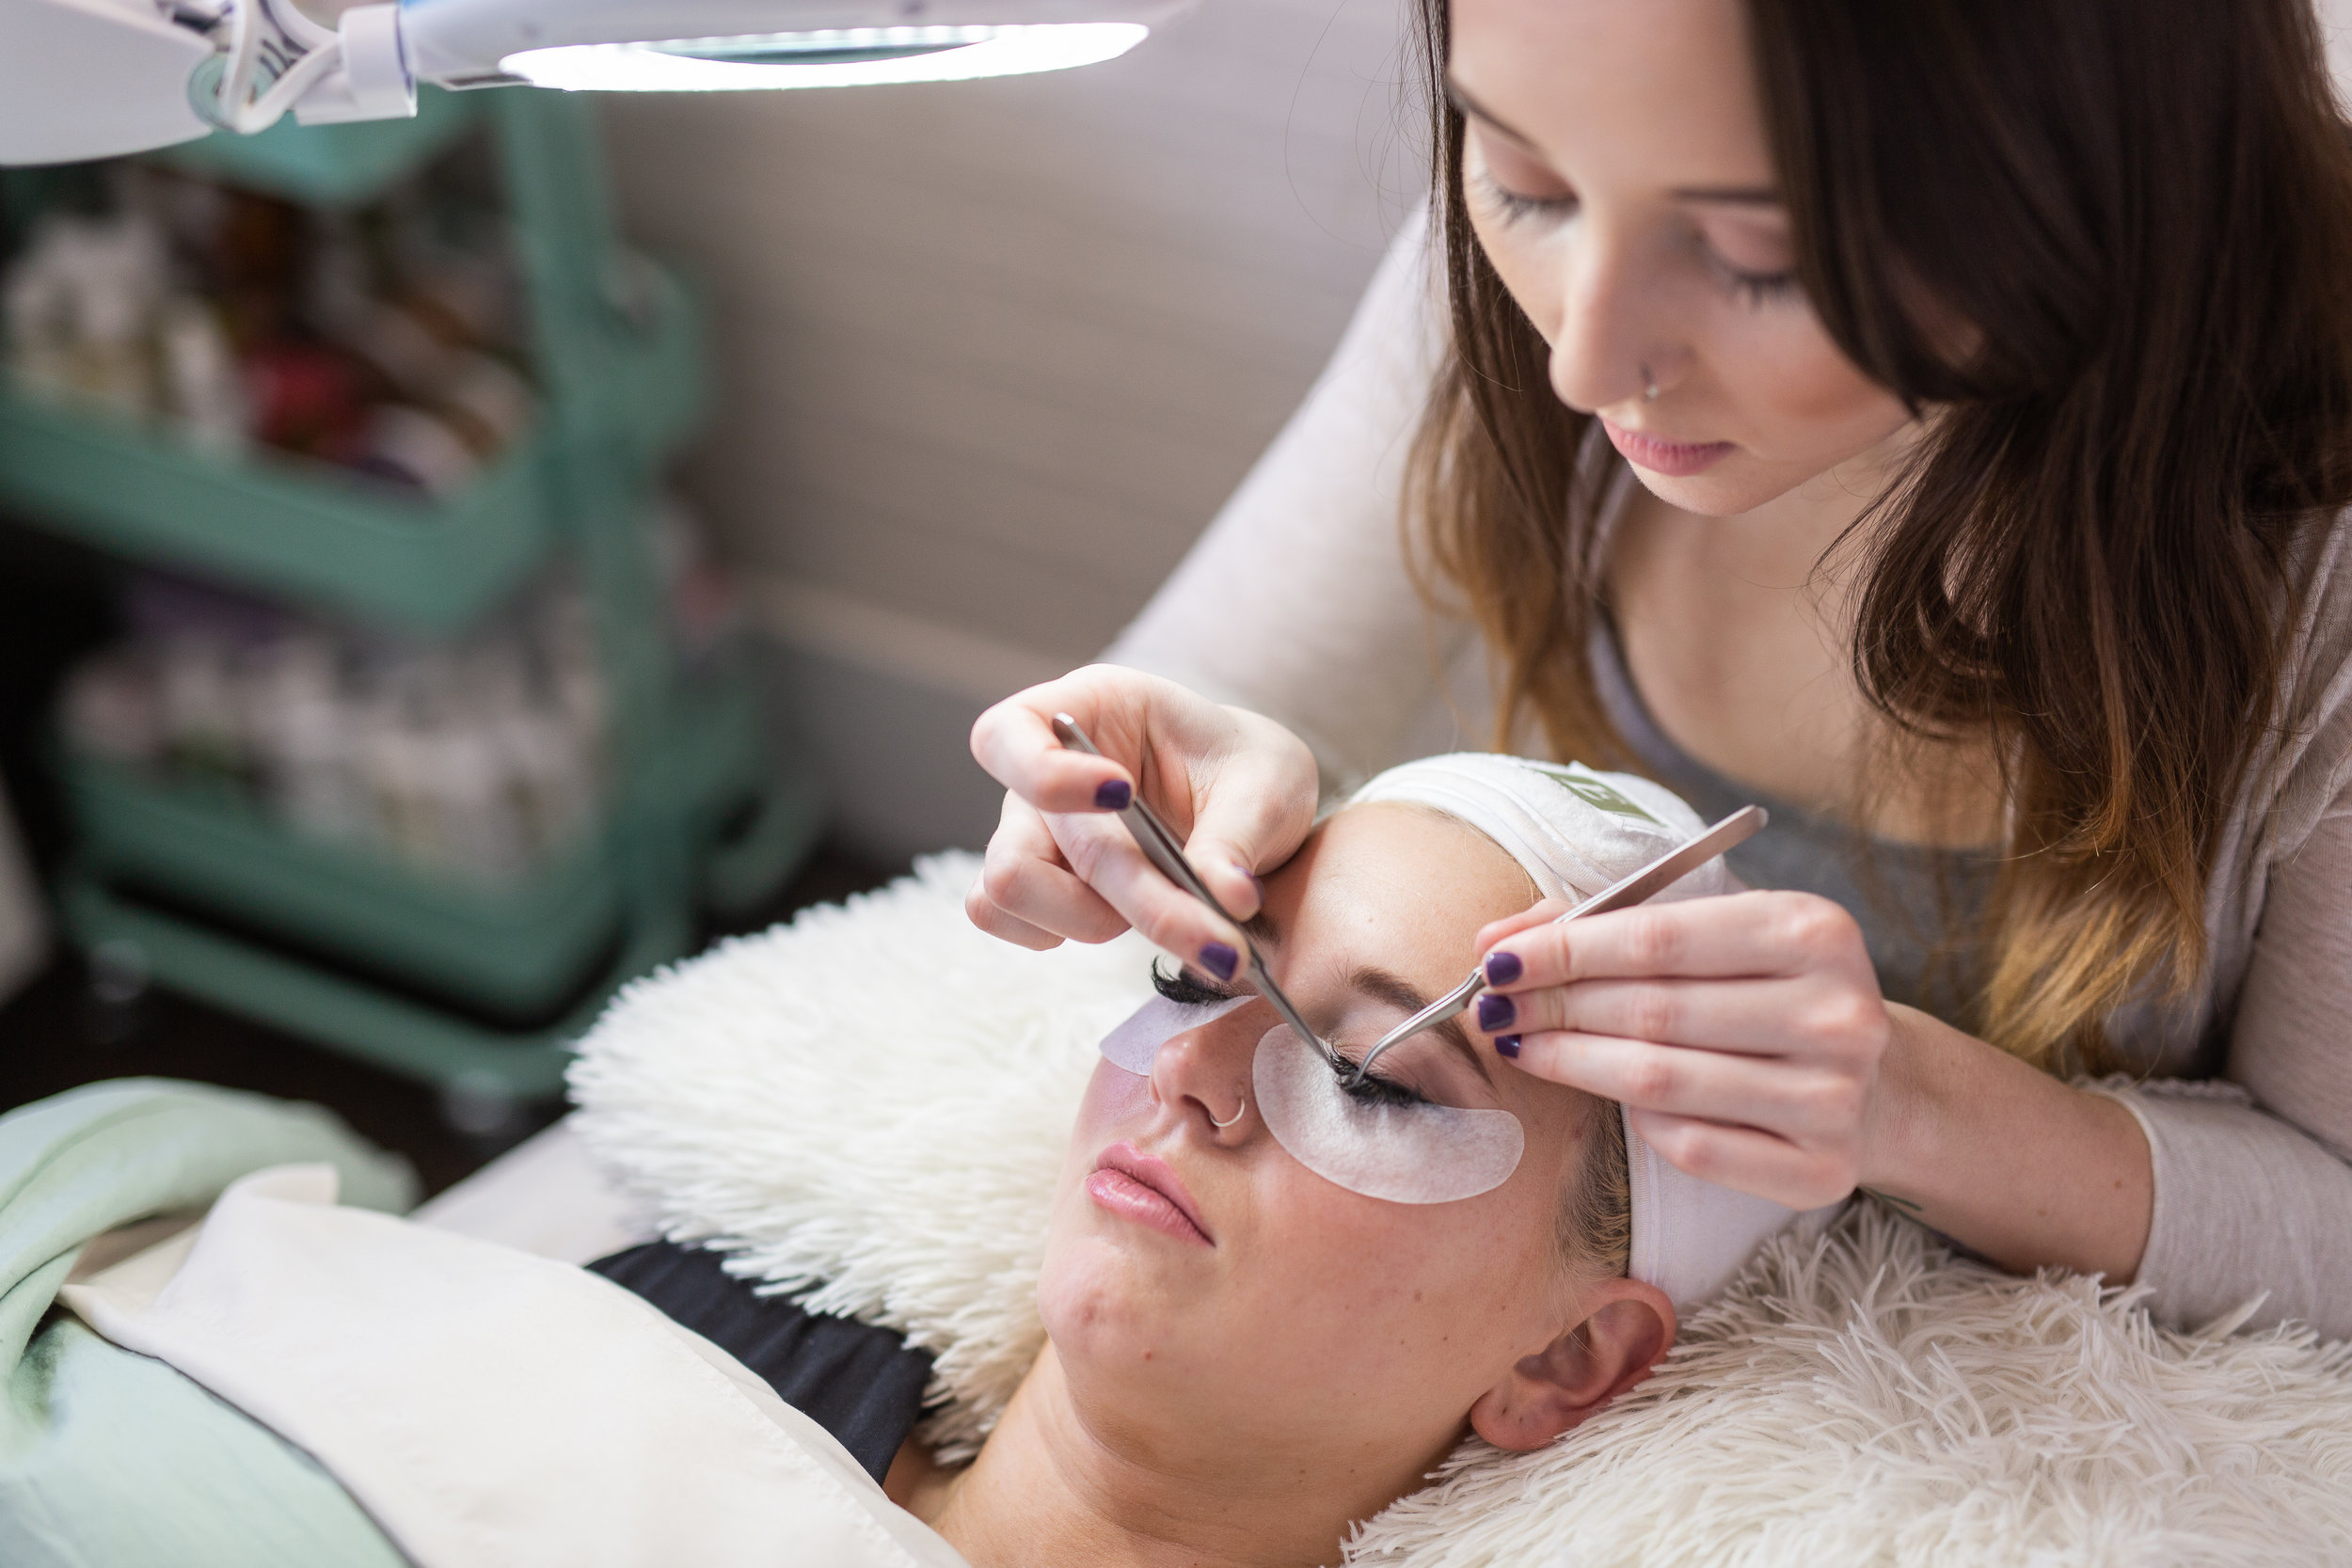 Eyelash Services - Depending on the condition of the lashes at the time of your service, lash fills may require more time